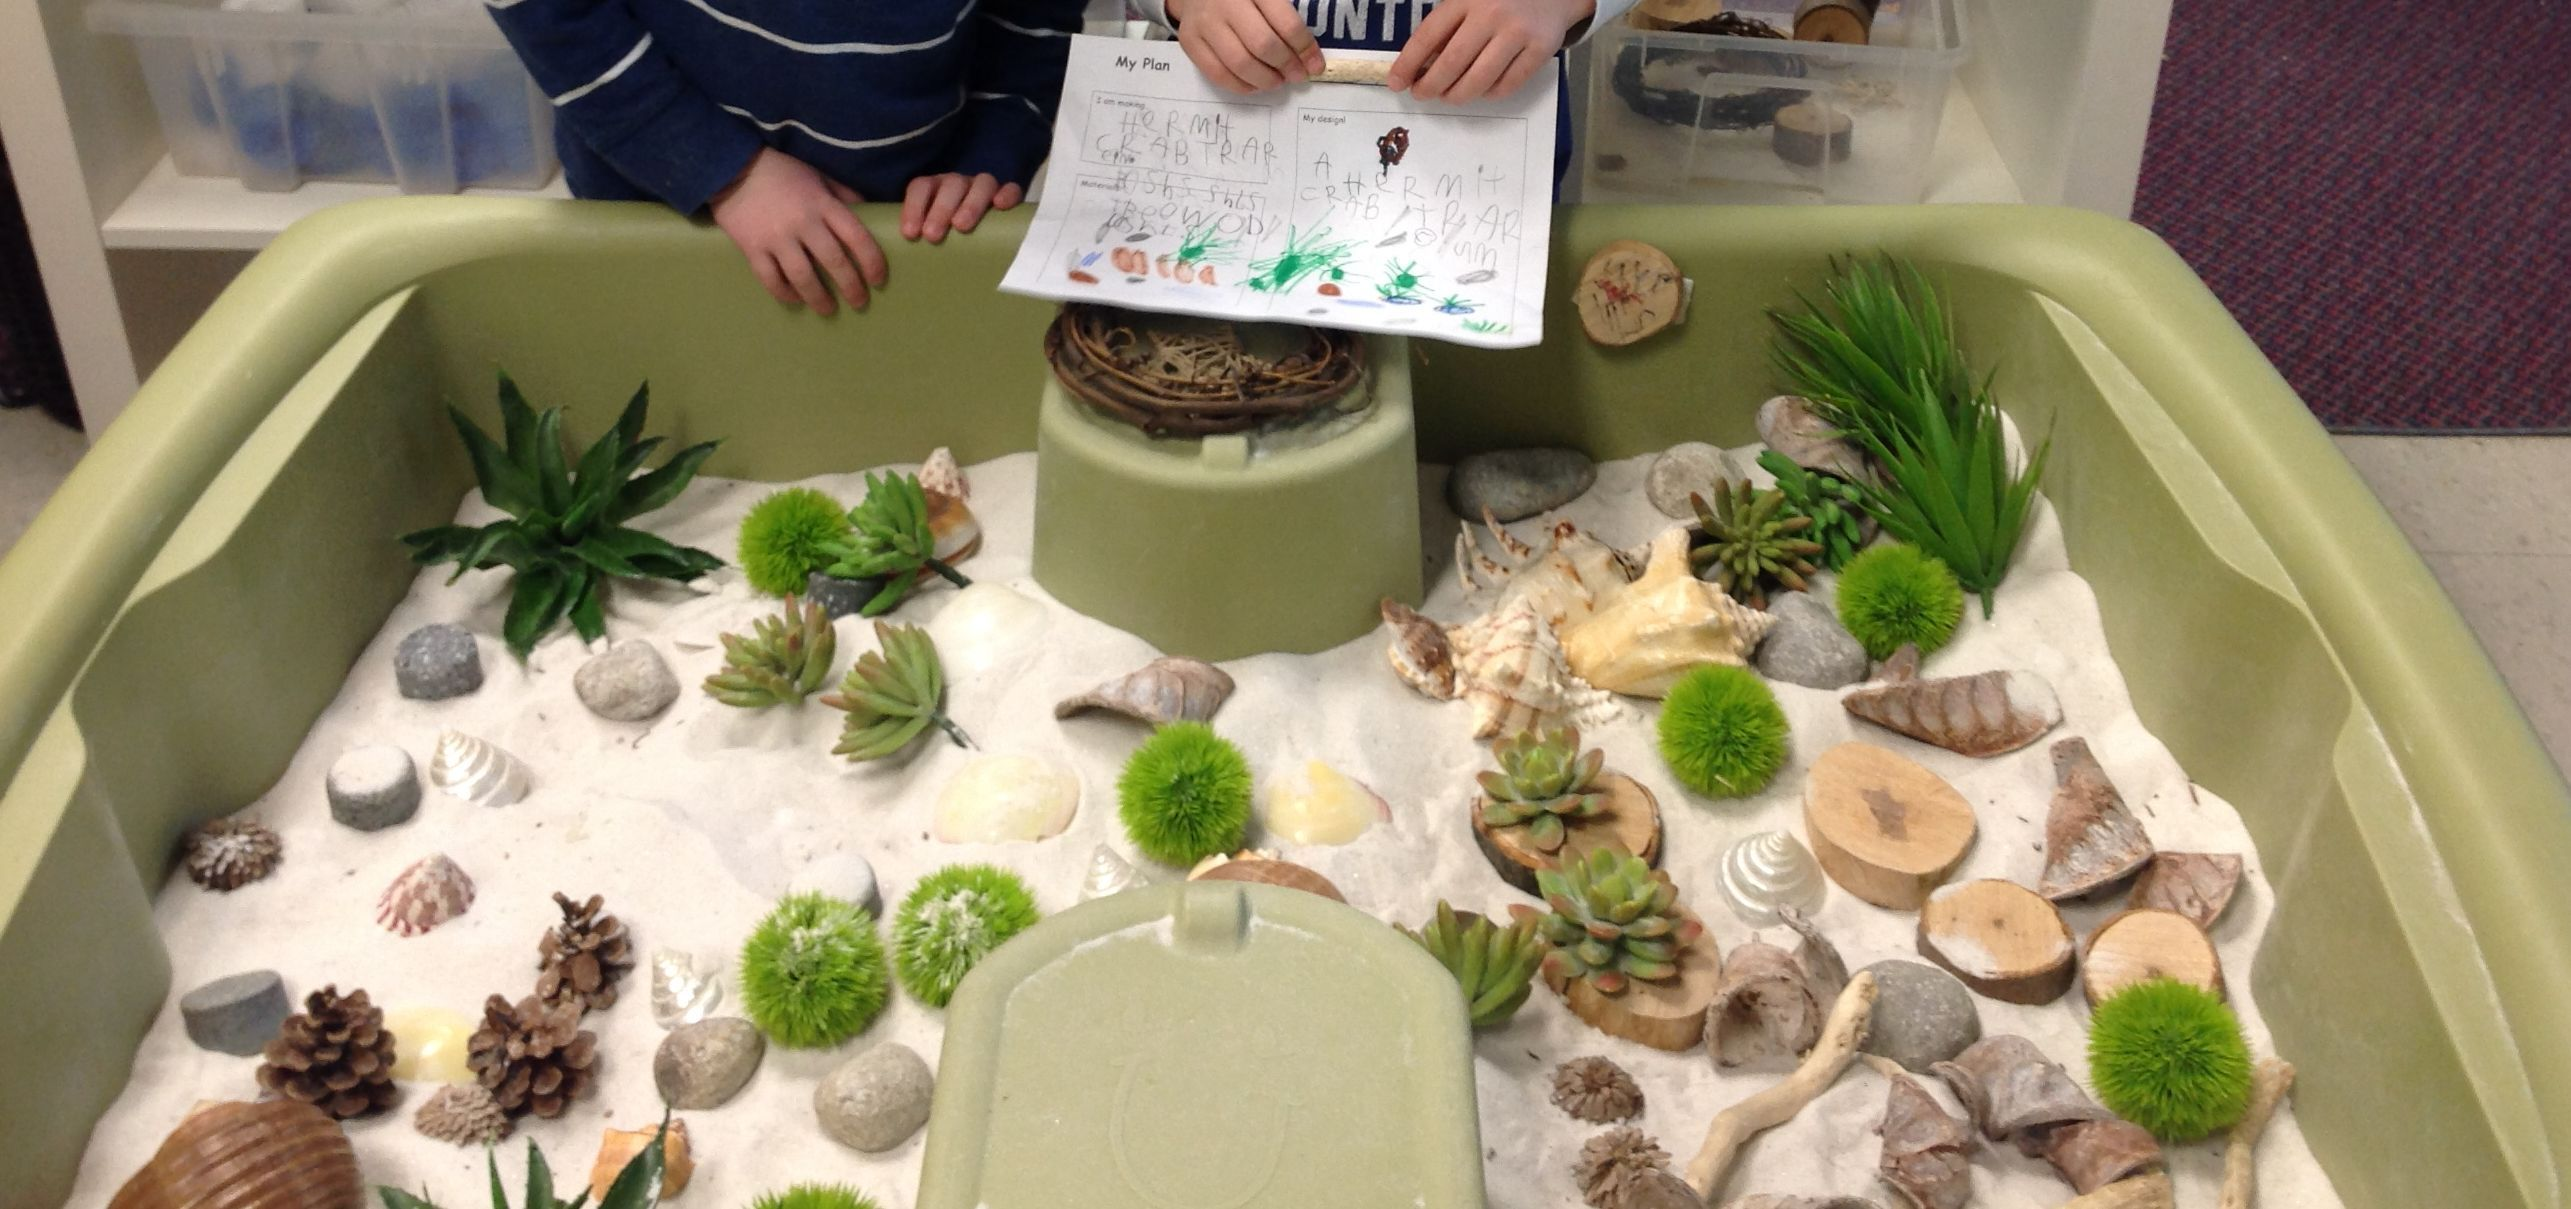 A Classroom Pet Provocation With Images